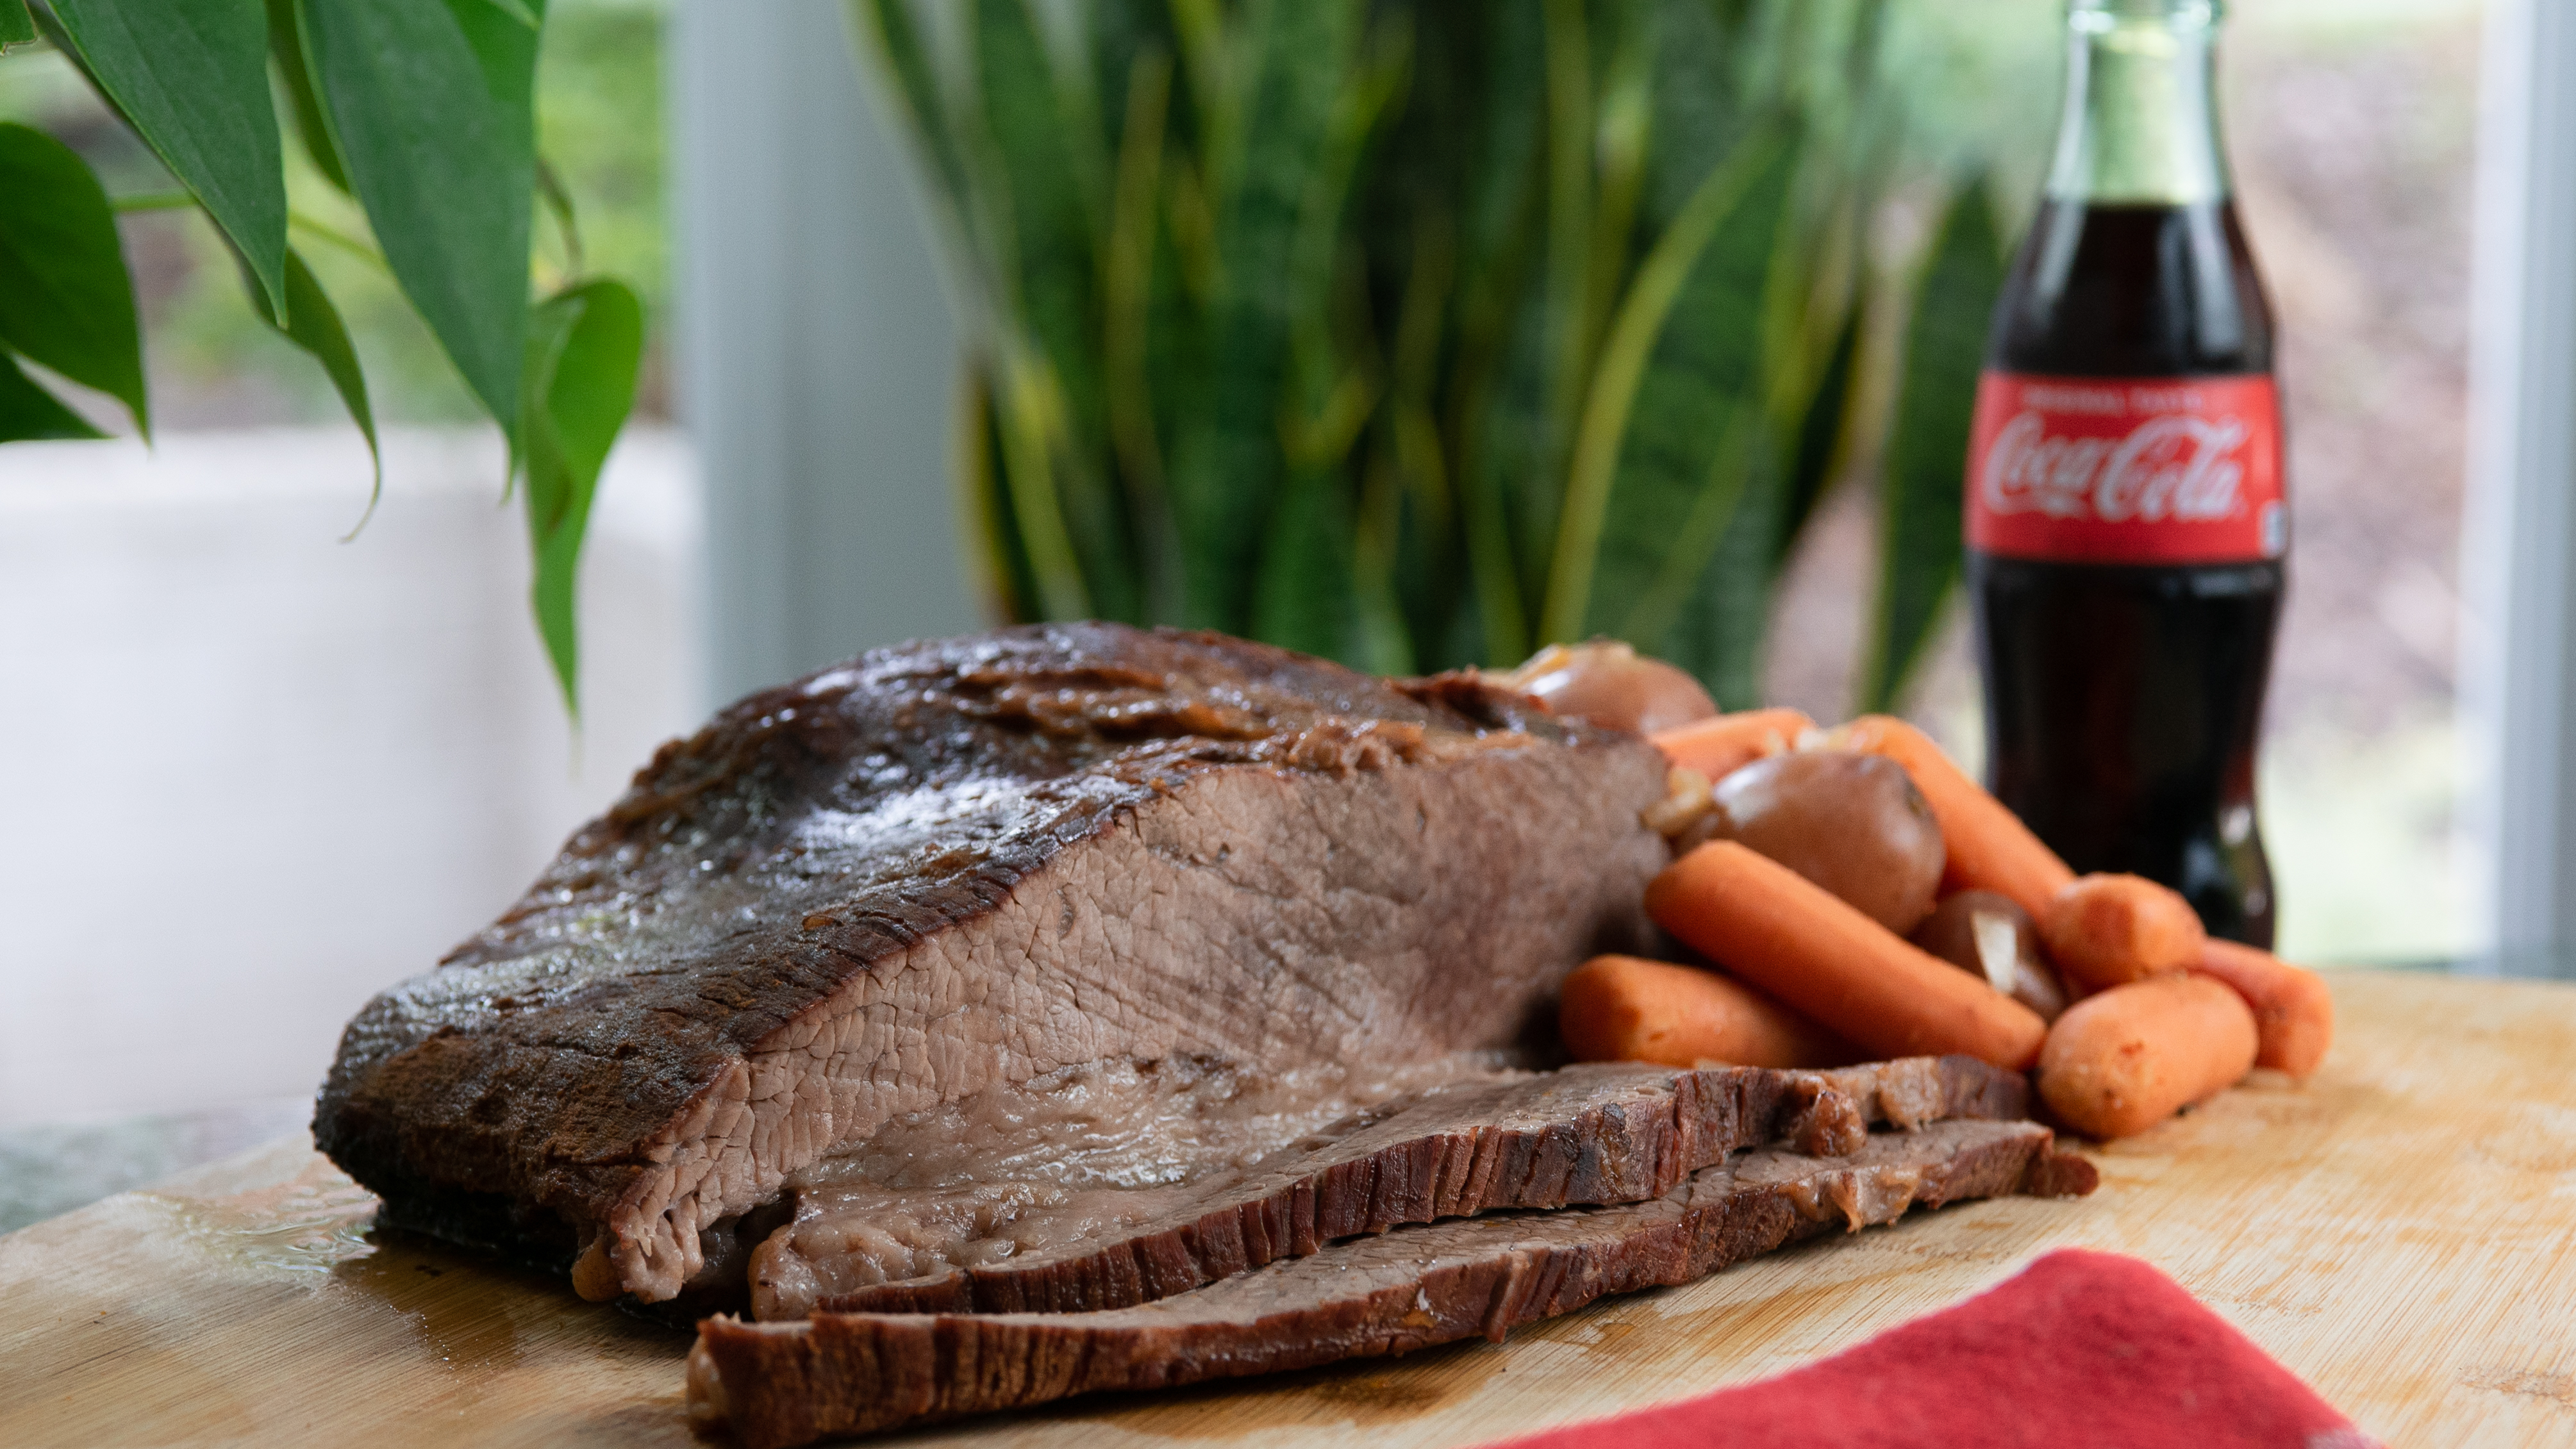 Beef Brisket Infused with Coca-Cola